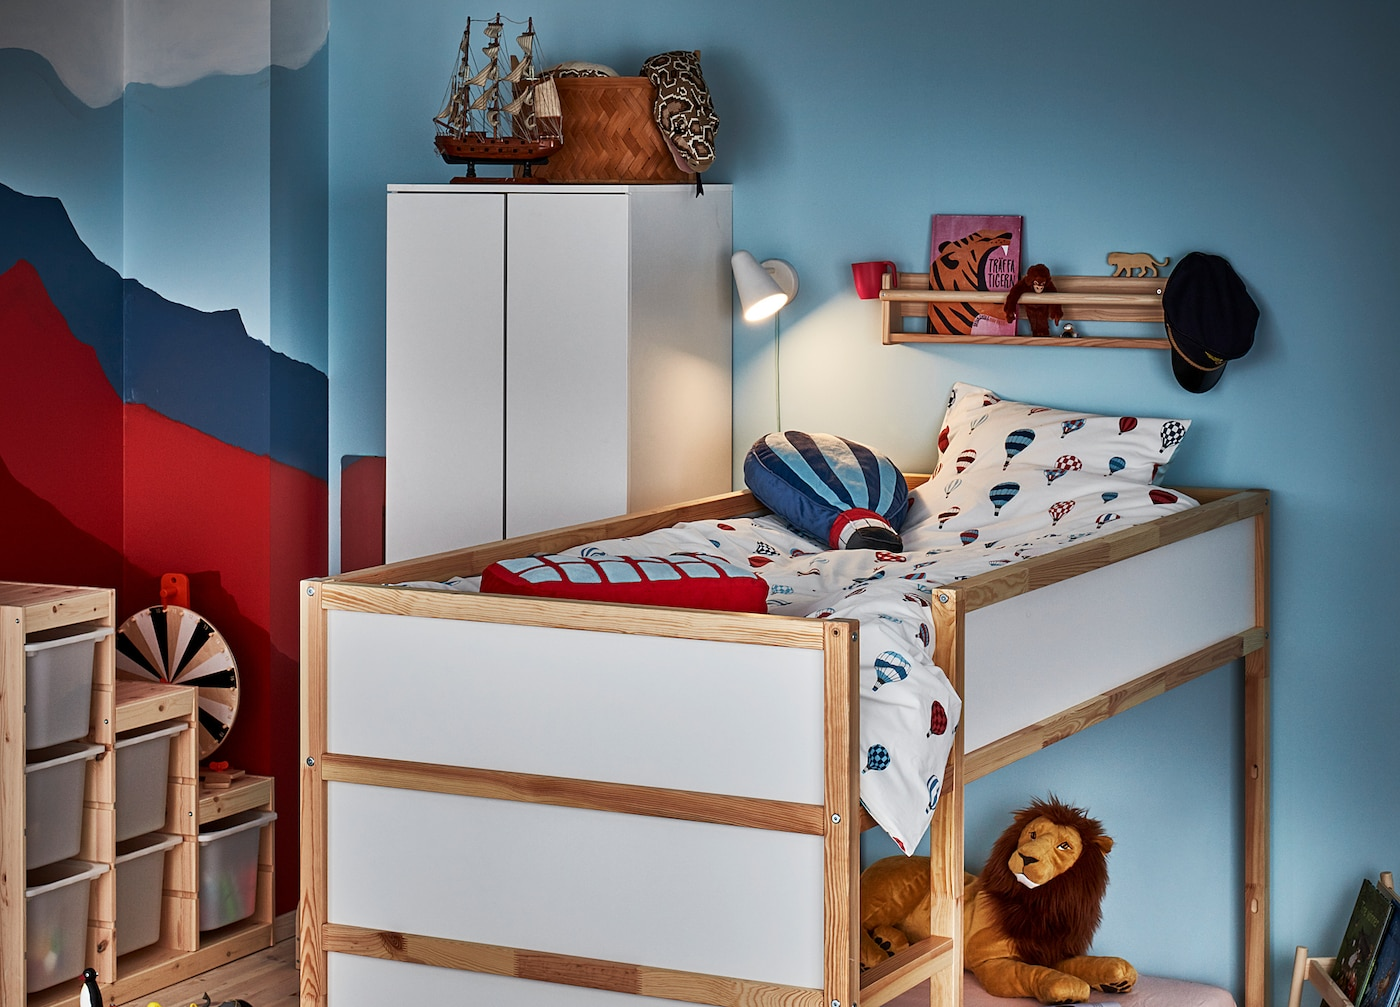 Kids Bunk Beds Ikea Online Discount Shop For Electronics Apparel Toys Books Games Computers Shoes Jewelry Watches Baby Products Sports Outdoors Office Products Bed Bath Furniture Tools Hardware Automotive